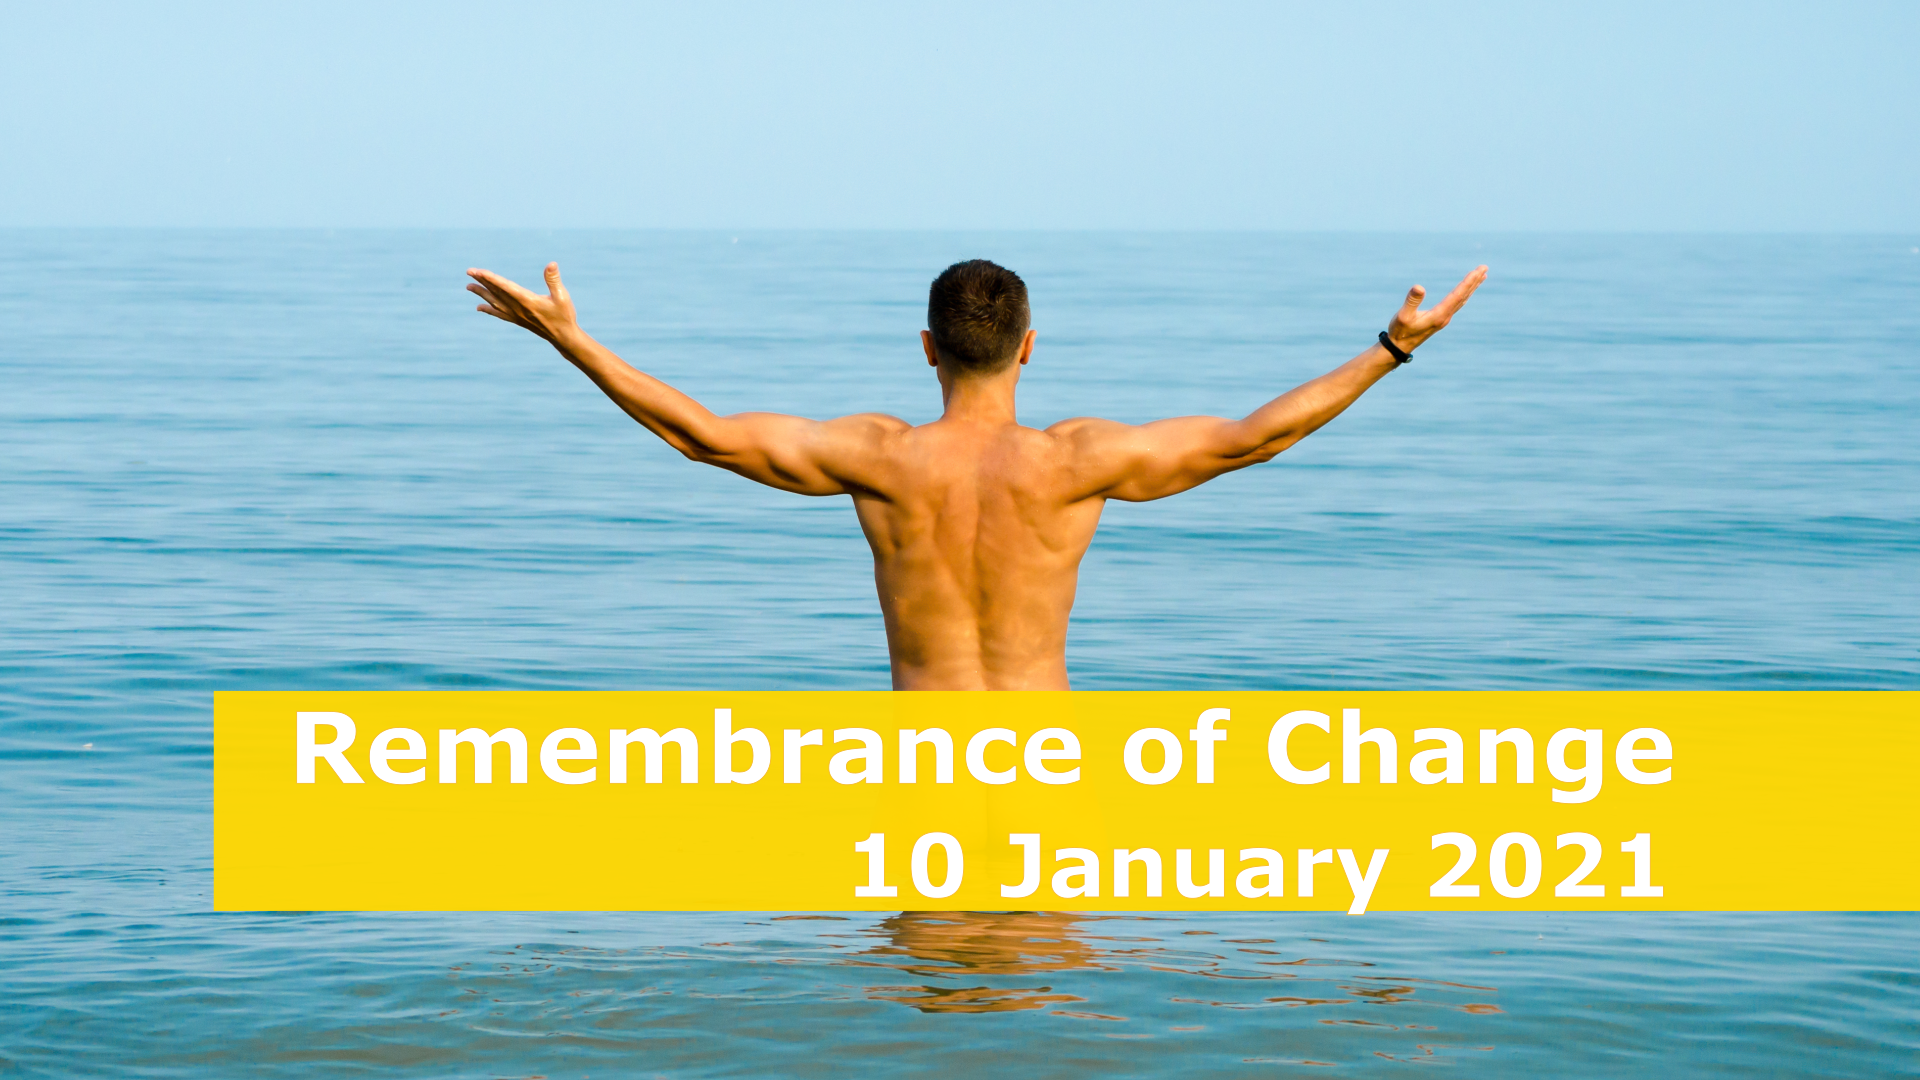 <span class='p-name'>Remembrance of Change — 10 January 2021 Devotional</span>